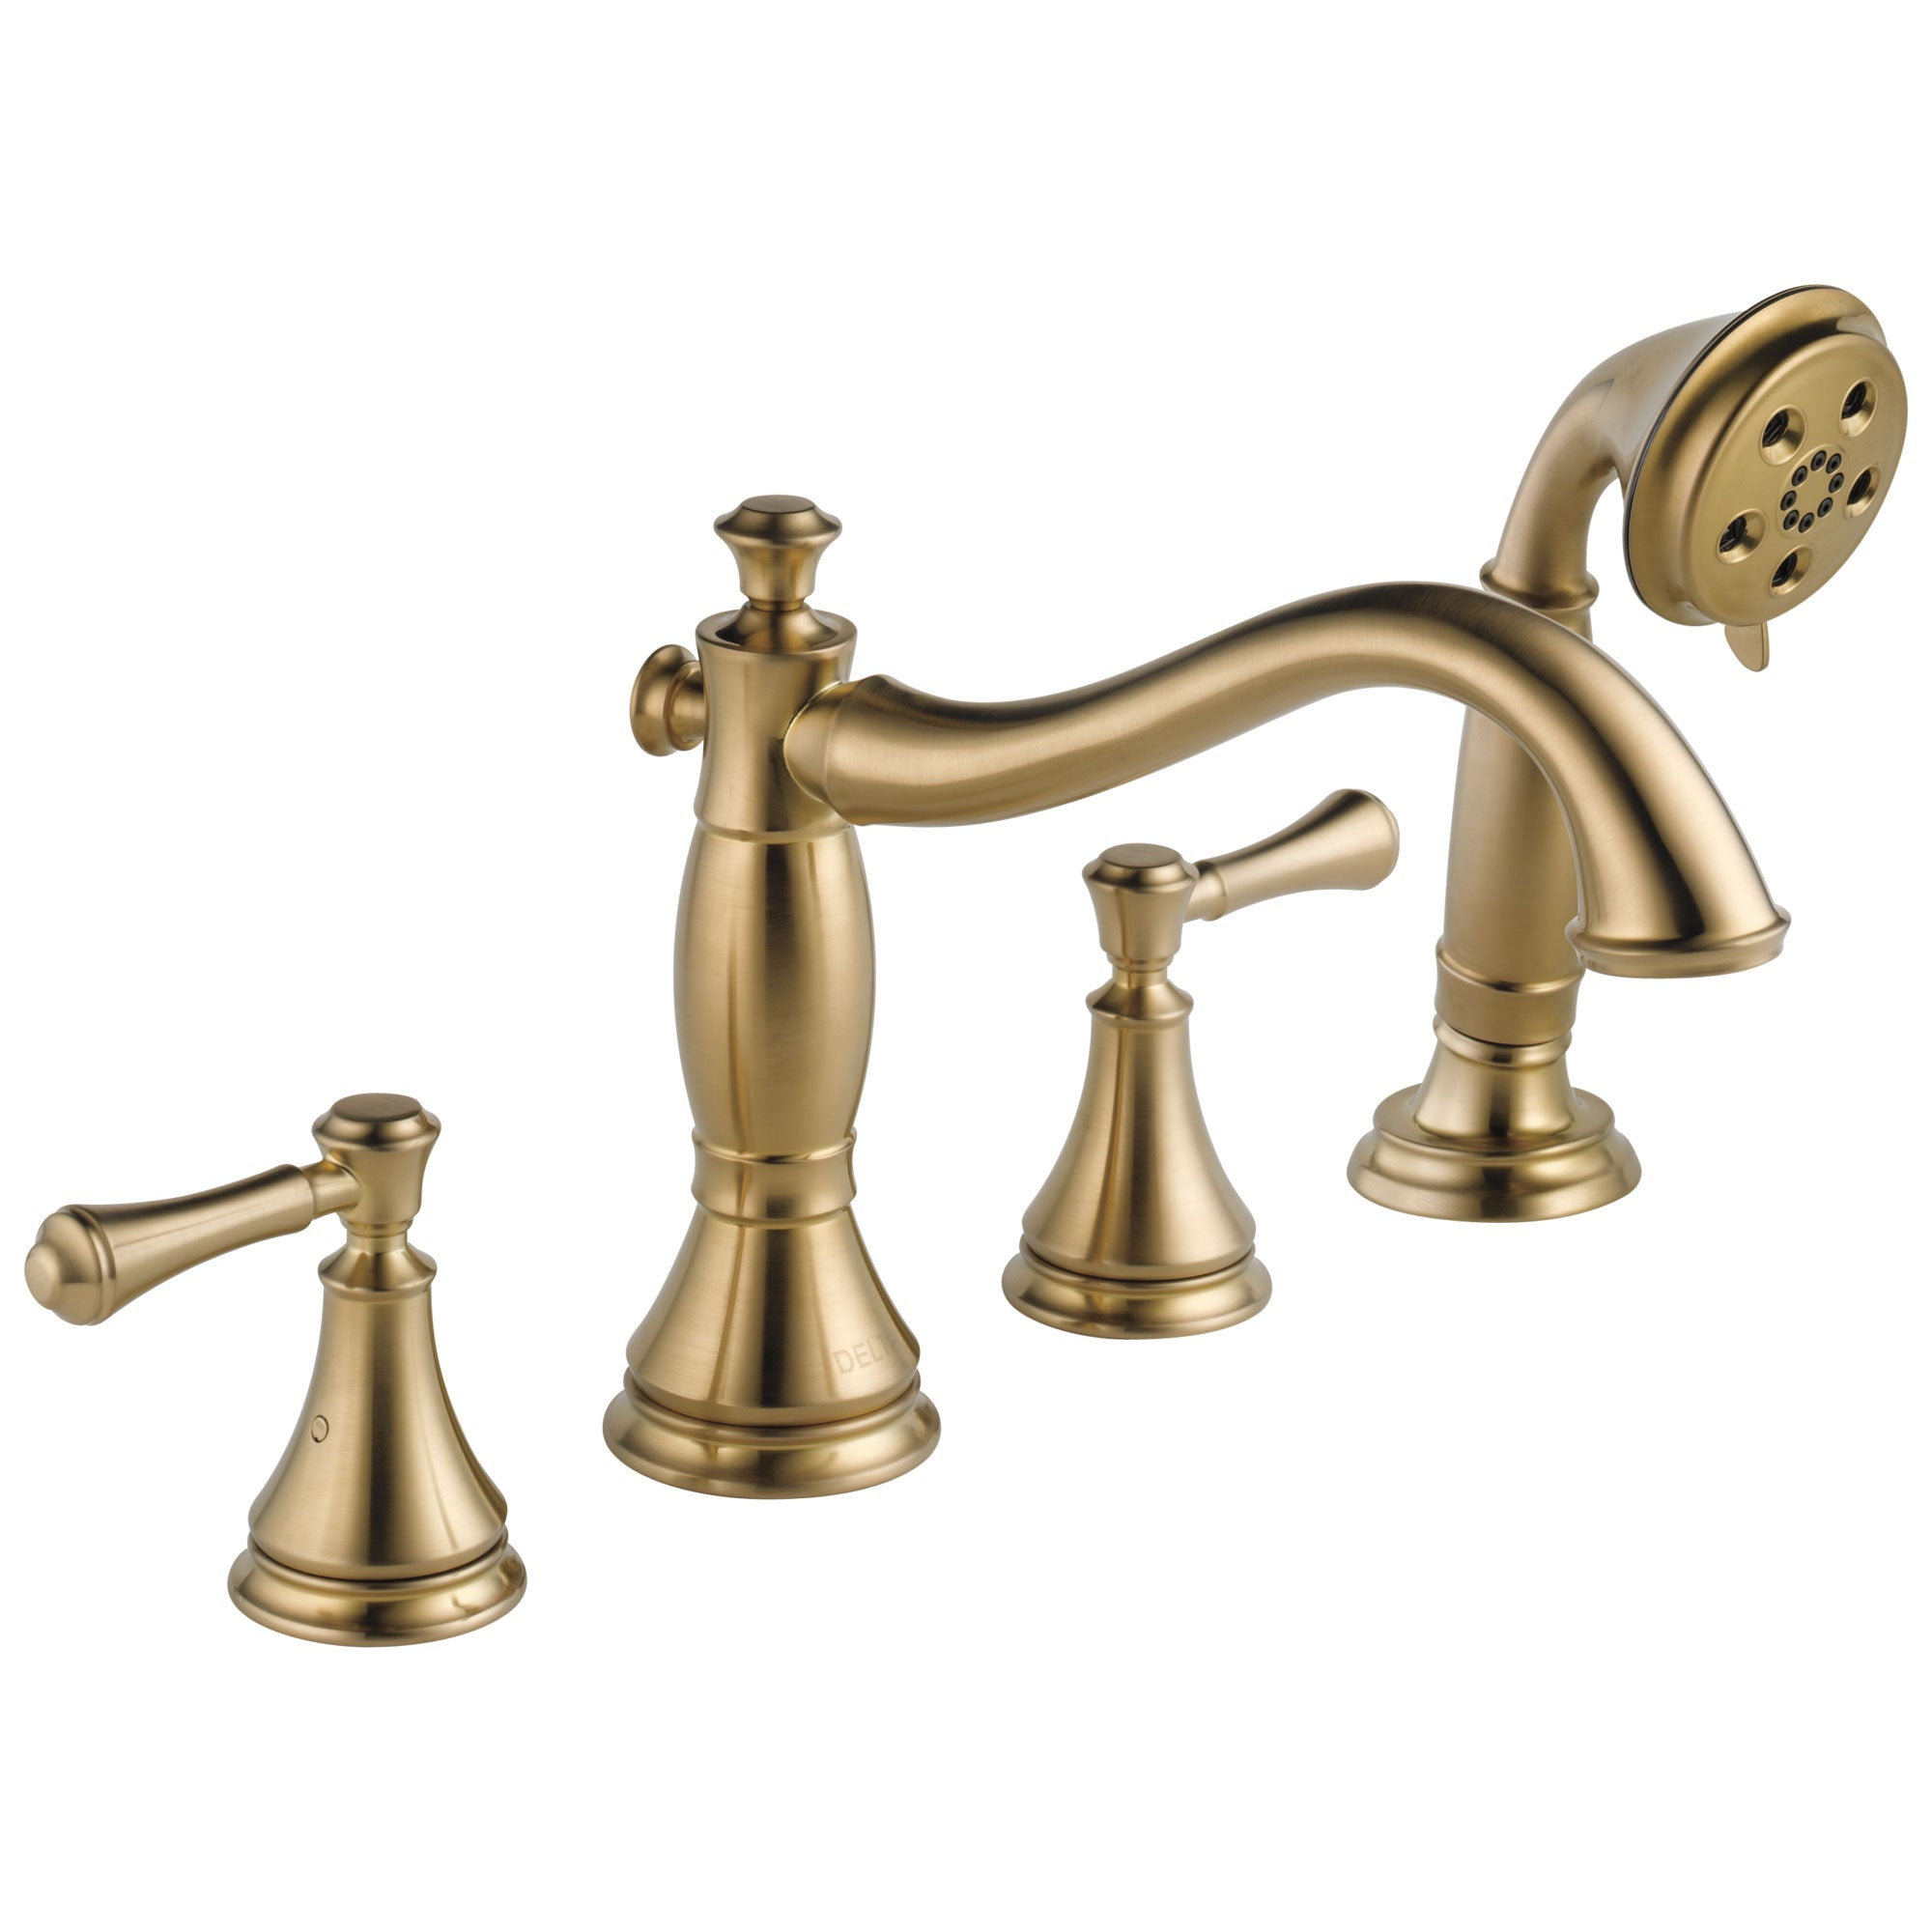 Delta Cassidy Collection Champagne Bronze Finish Roman Tub Filler Faucet with Hand Shower INCLUDES (2) Lever Handles and Rough-in Valve D1404V